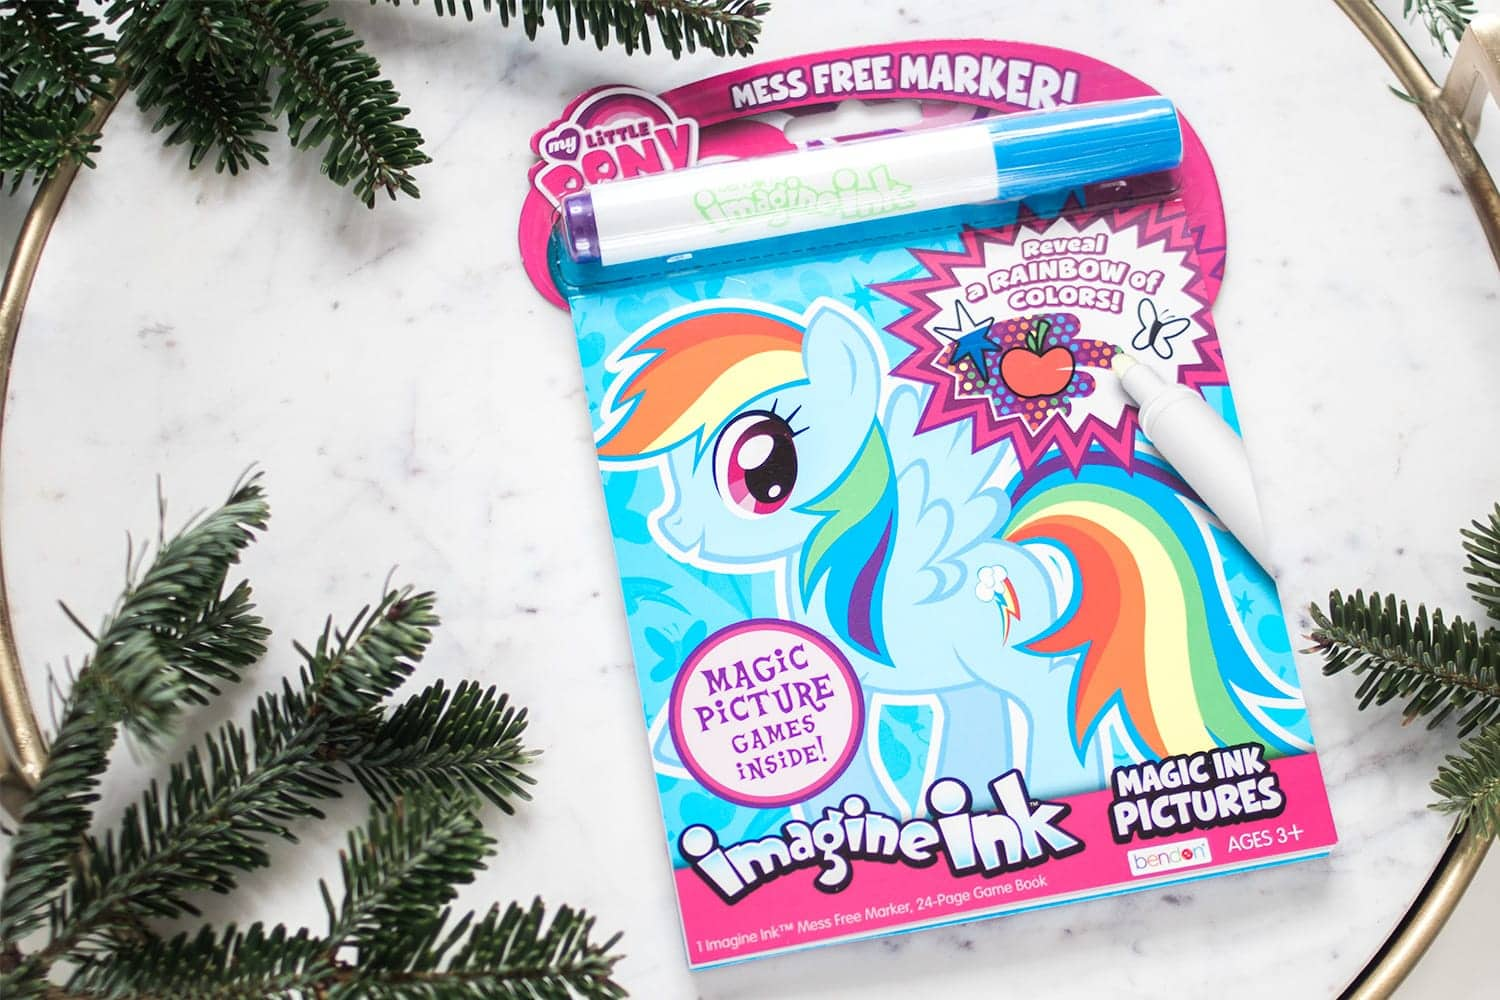 Imagine Ink Coloring Book - stocking stuffer idea for kids